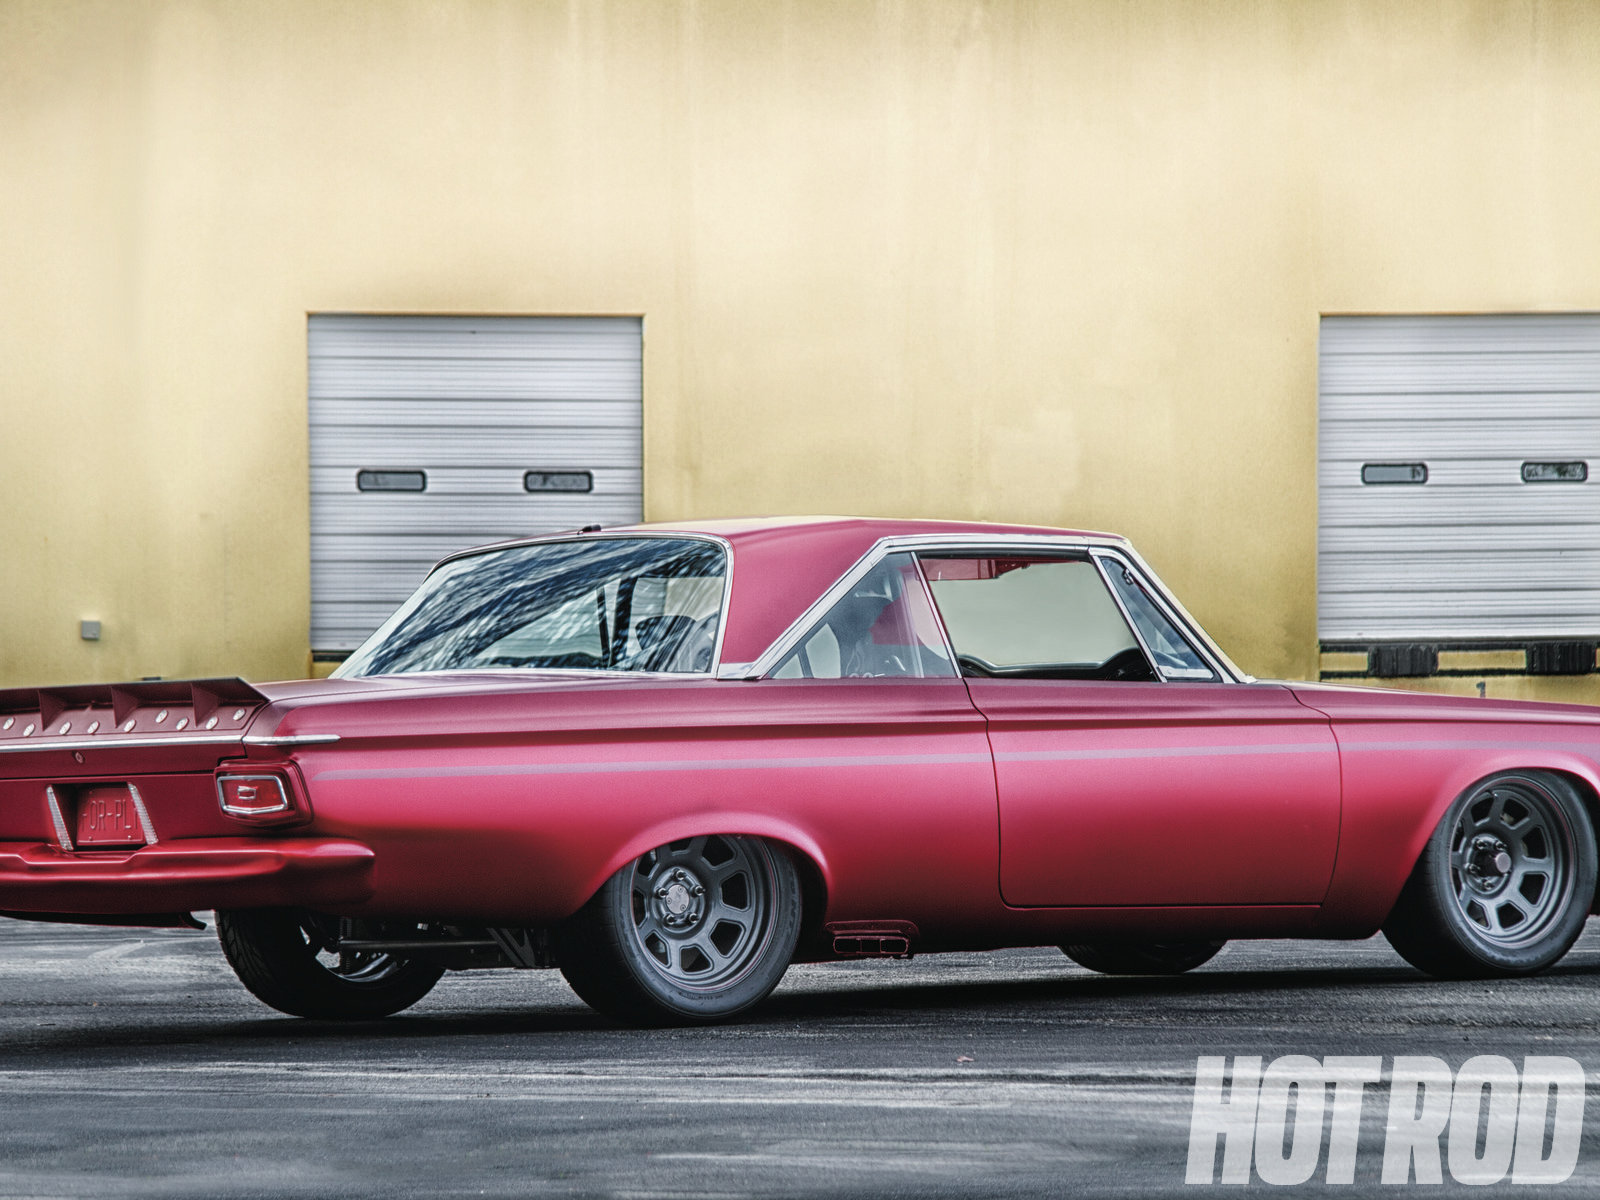 1964 Plymouth Belvedere Backgrounds, Compatible - PC, Mobile, Gadgets| 1600x1200 px